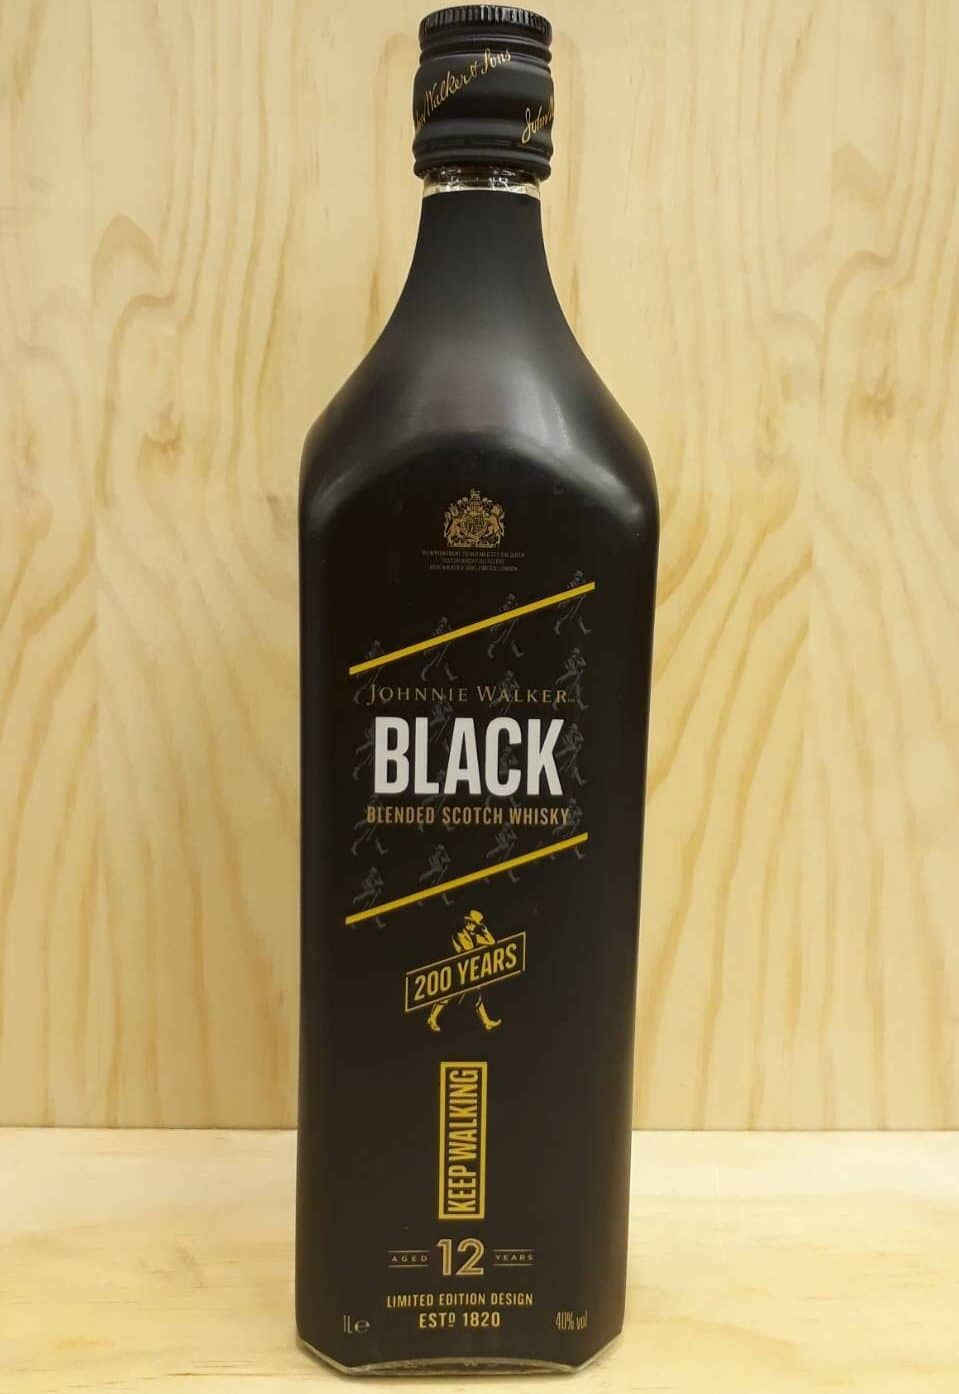 Johnnie Walker Black 12 Years Old Keep Walking 200 Years Limited Edition Design